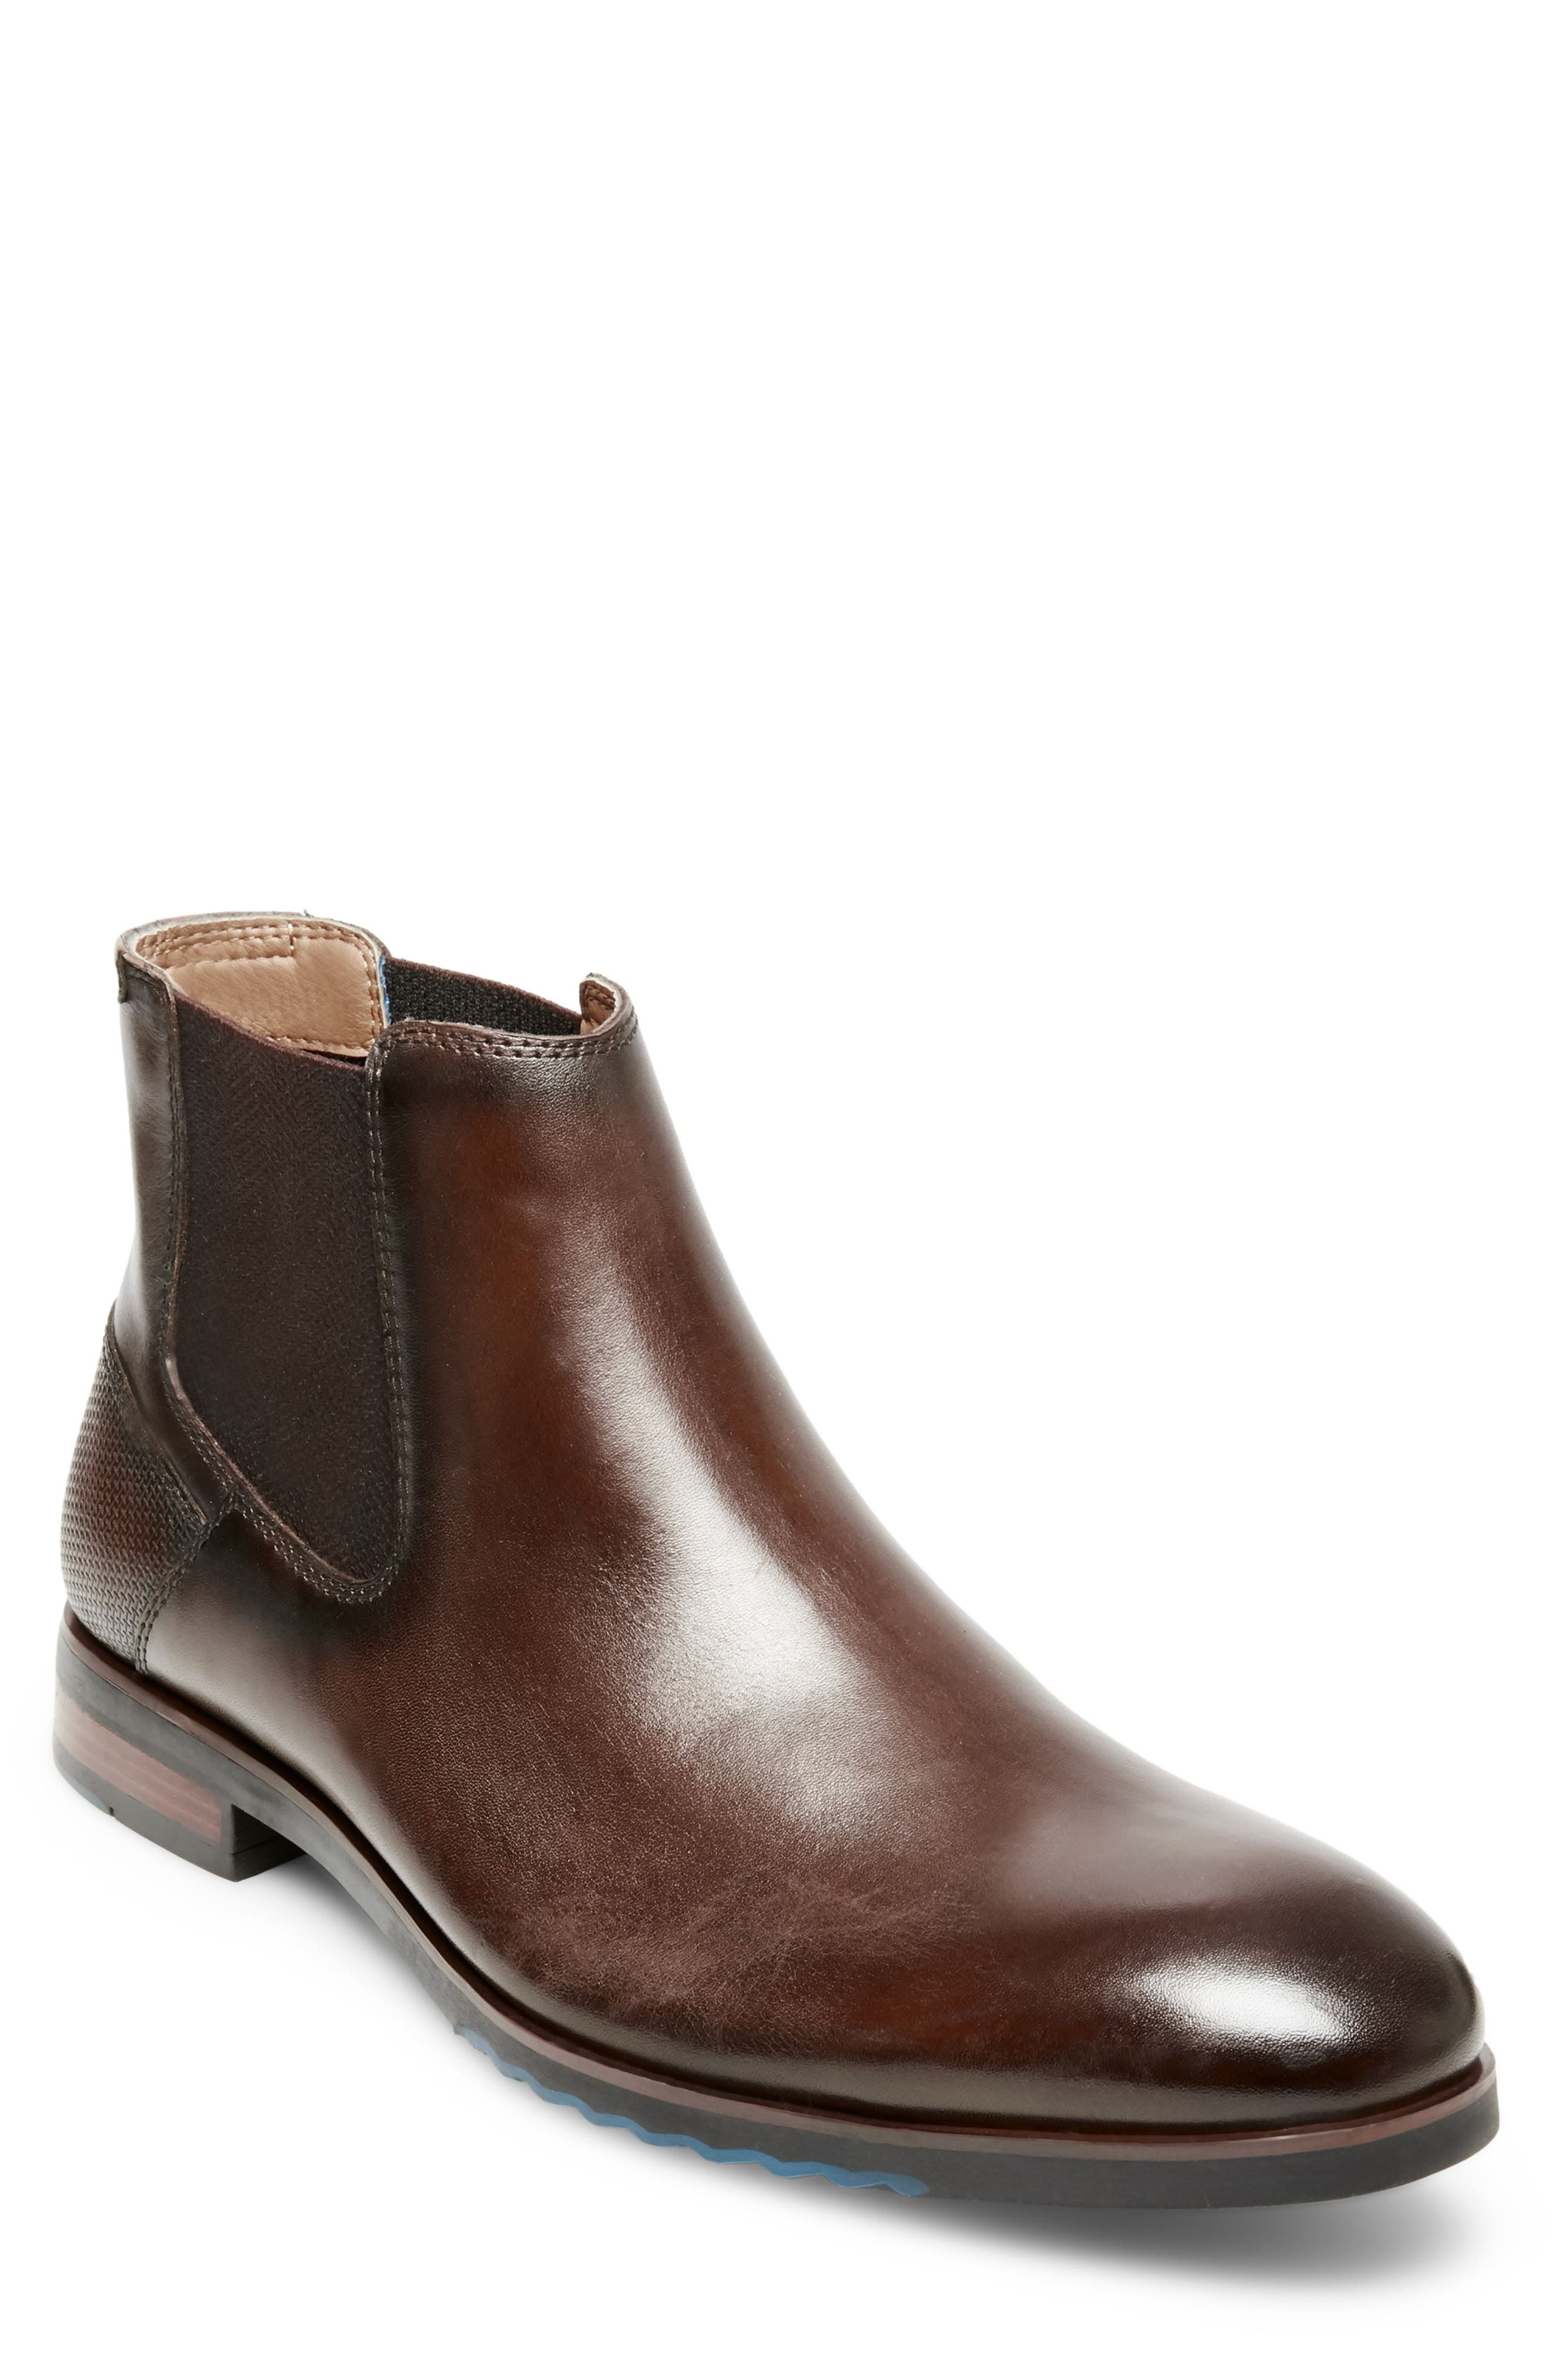 Leston Chelsea Boot,                         Main,                         color, Brown Leather